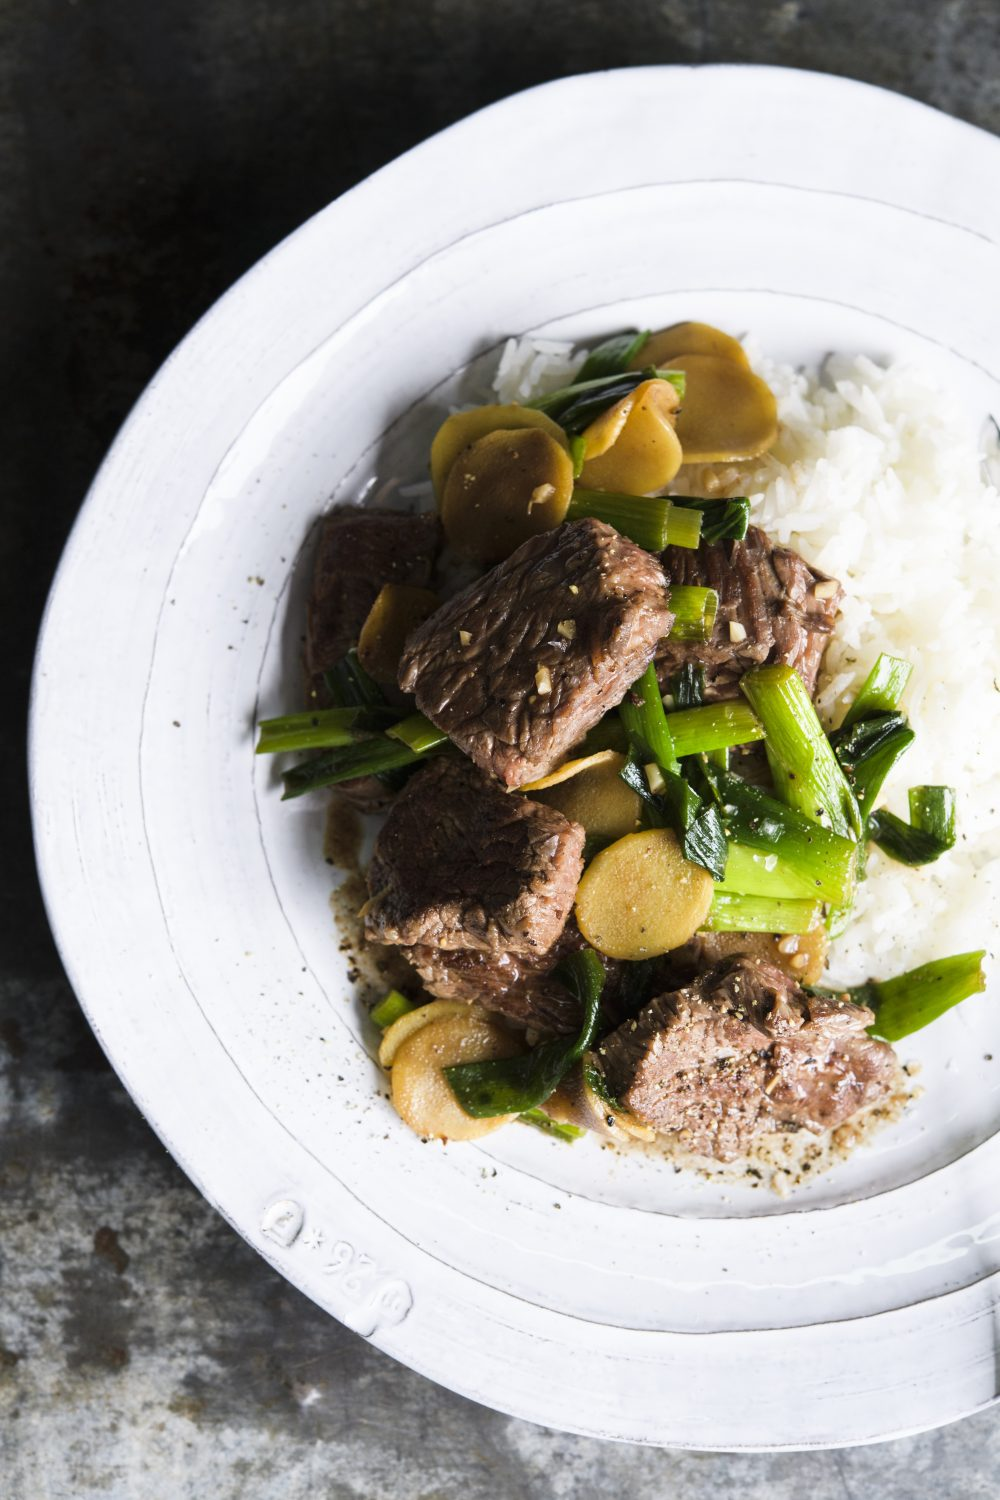 Khmer Stir-Fried Beef and Ginger